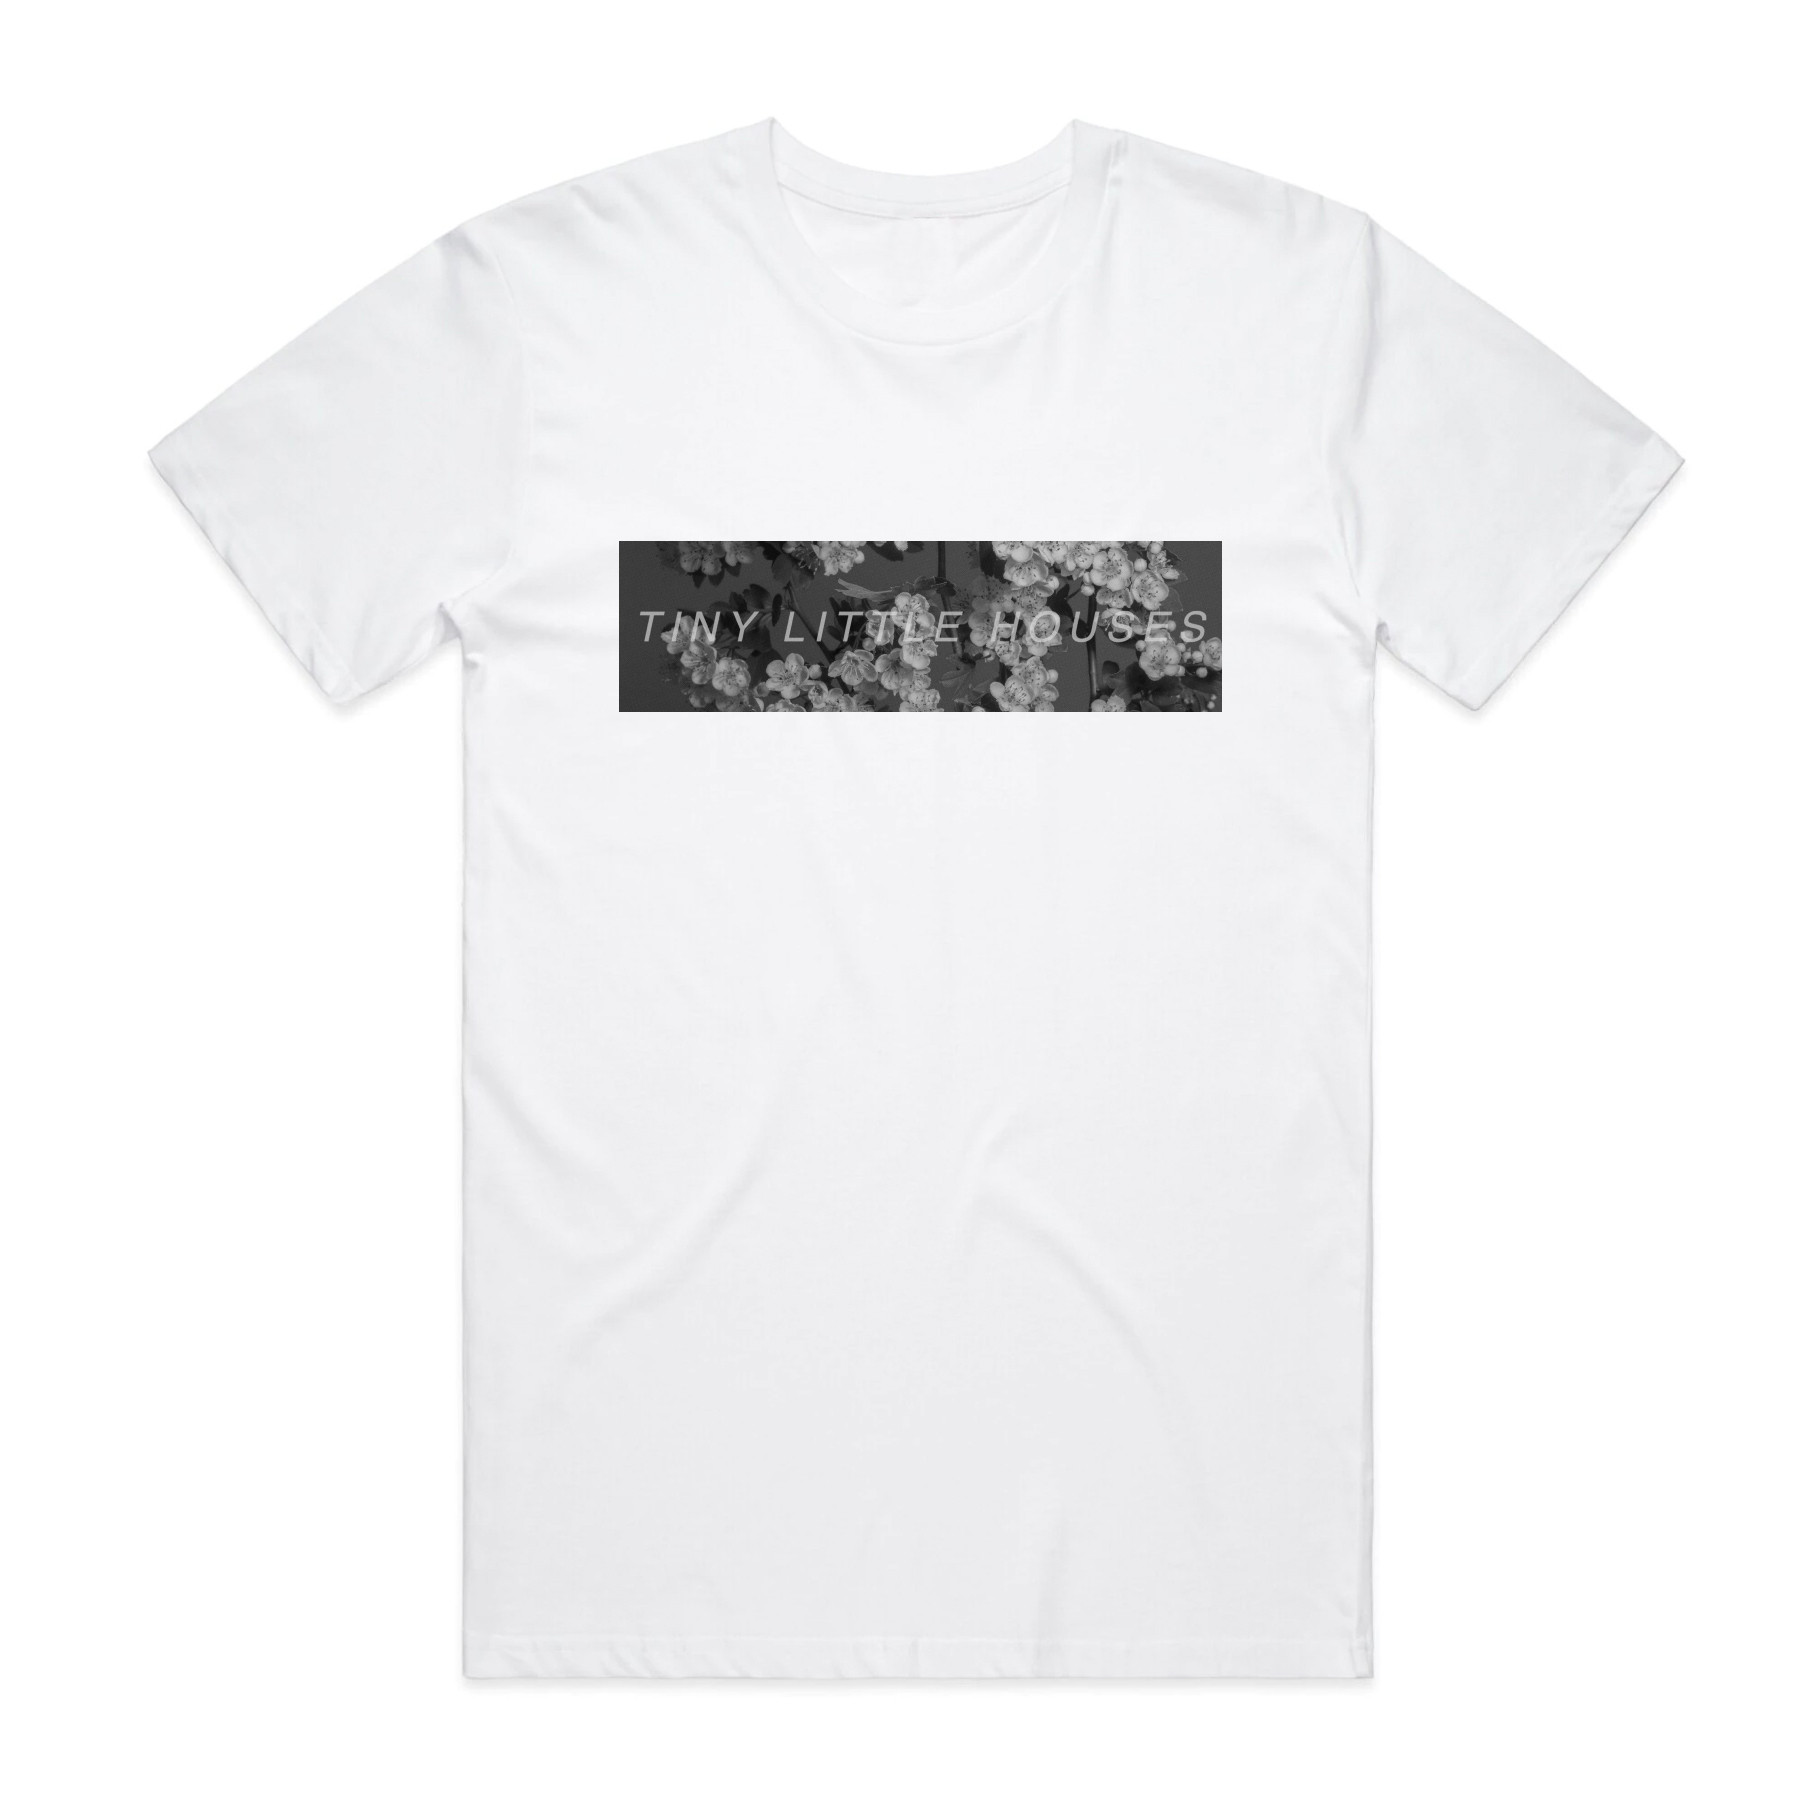 Tiny Little Houses - Richard Cory White Tee